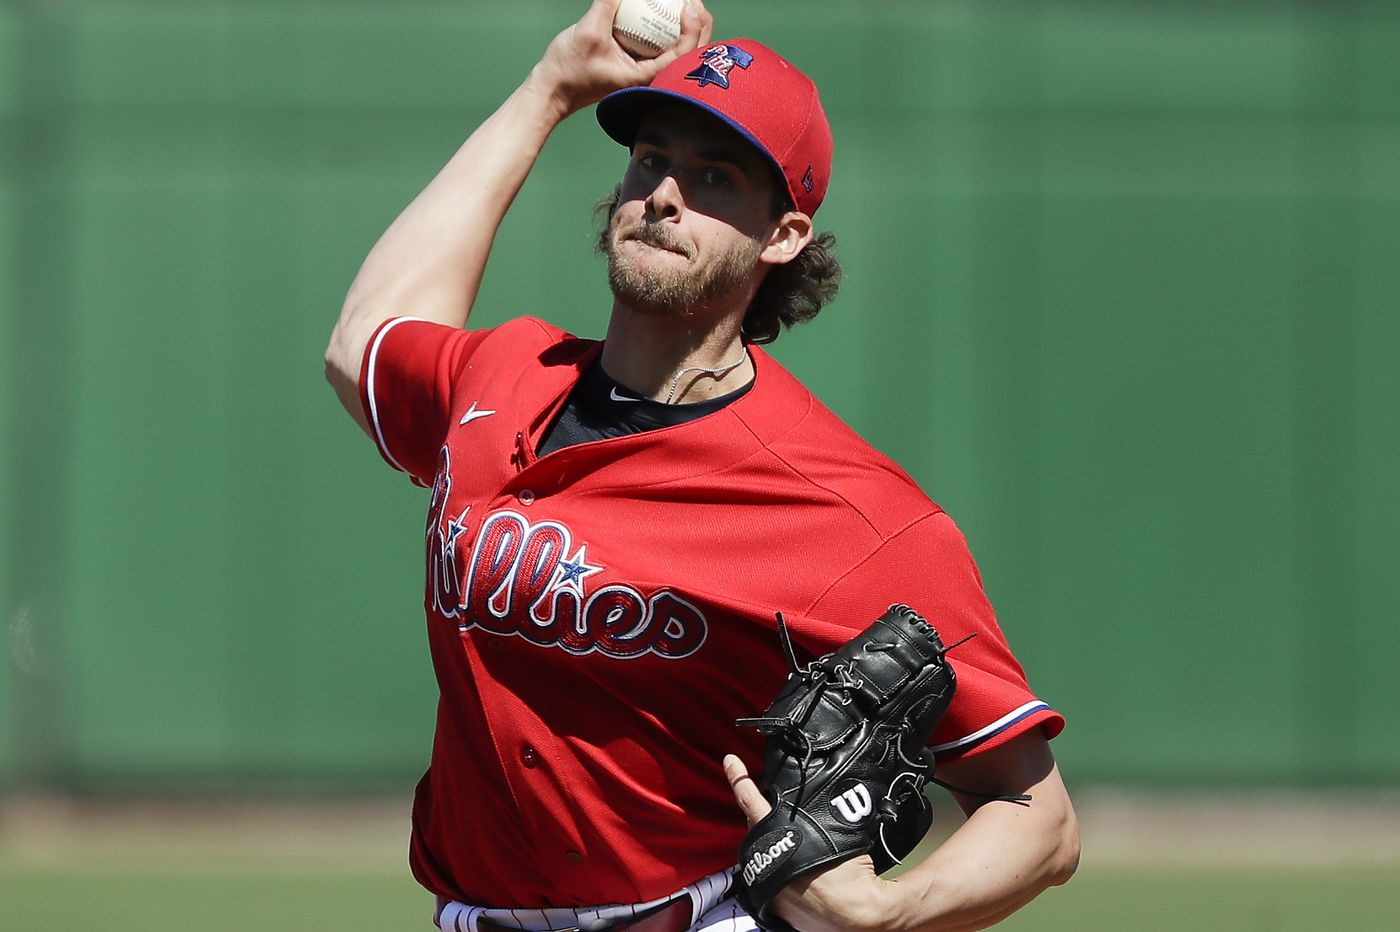 Aaron Nola's delayed arrival to Phillies camp highlights another challenge for MLB in playing amid COVID-19